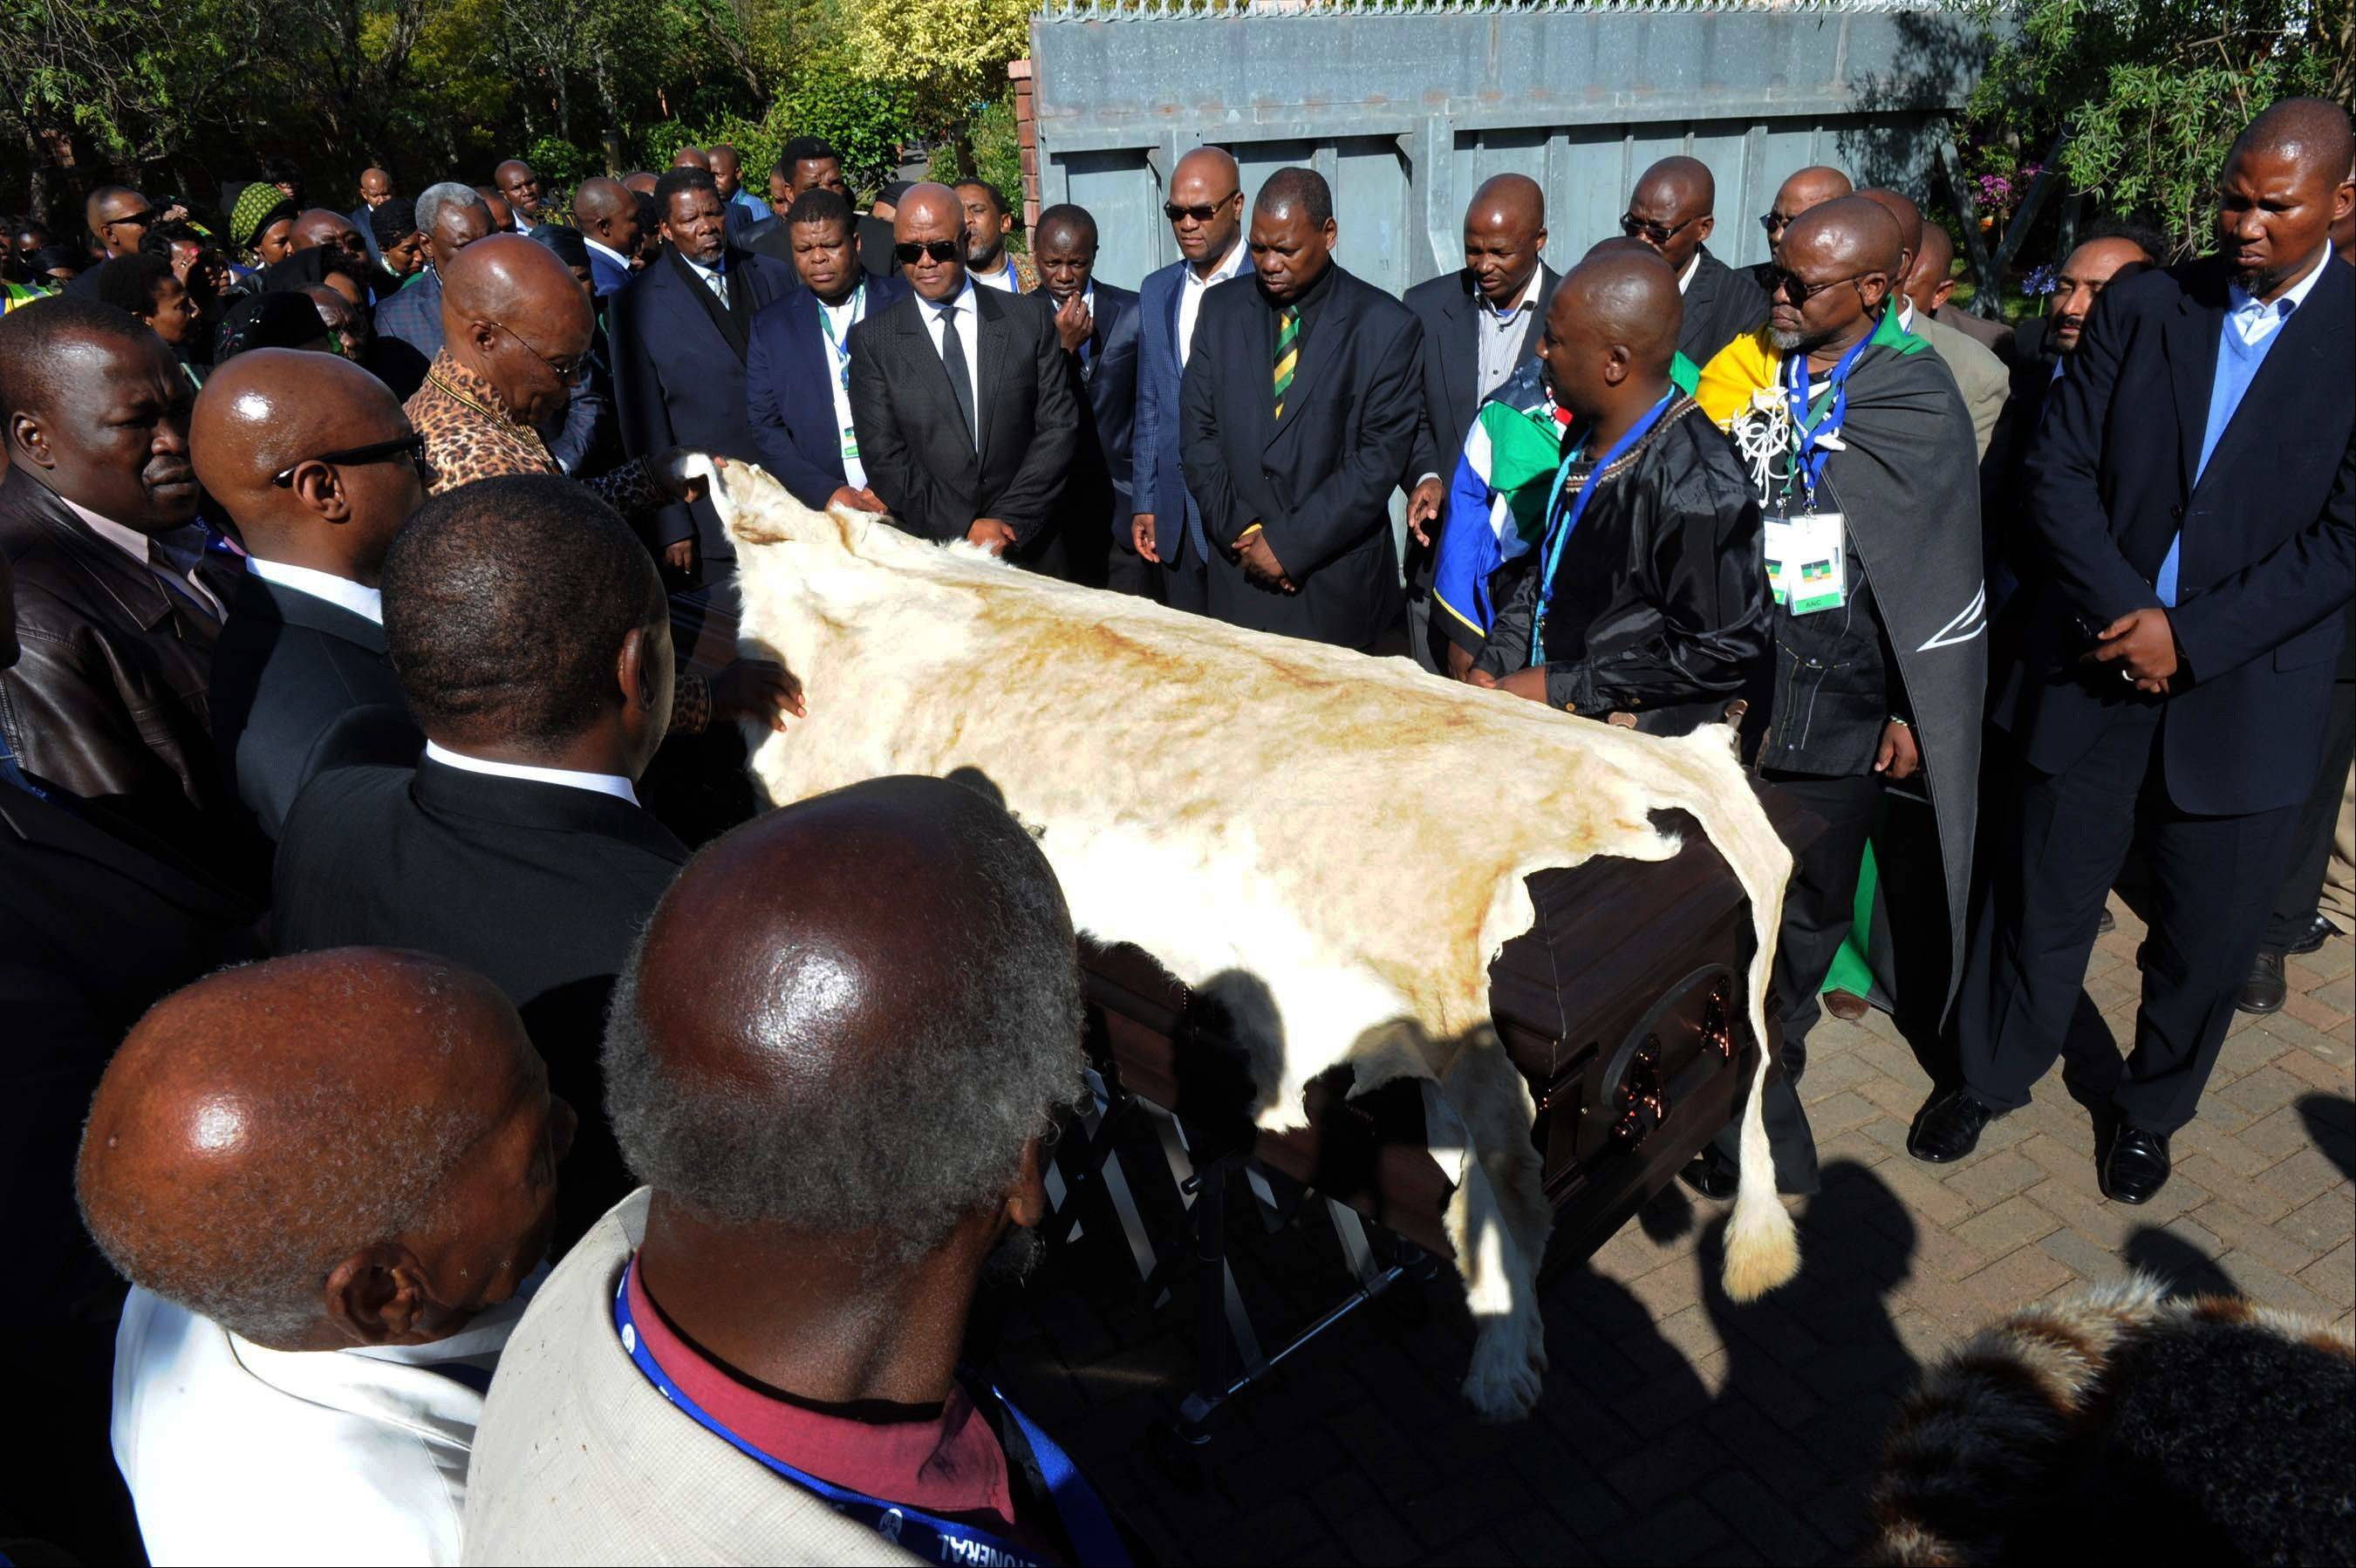 Traditional tribal rituals at Mandela's funeral